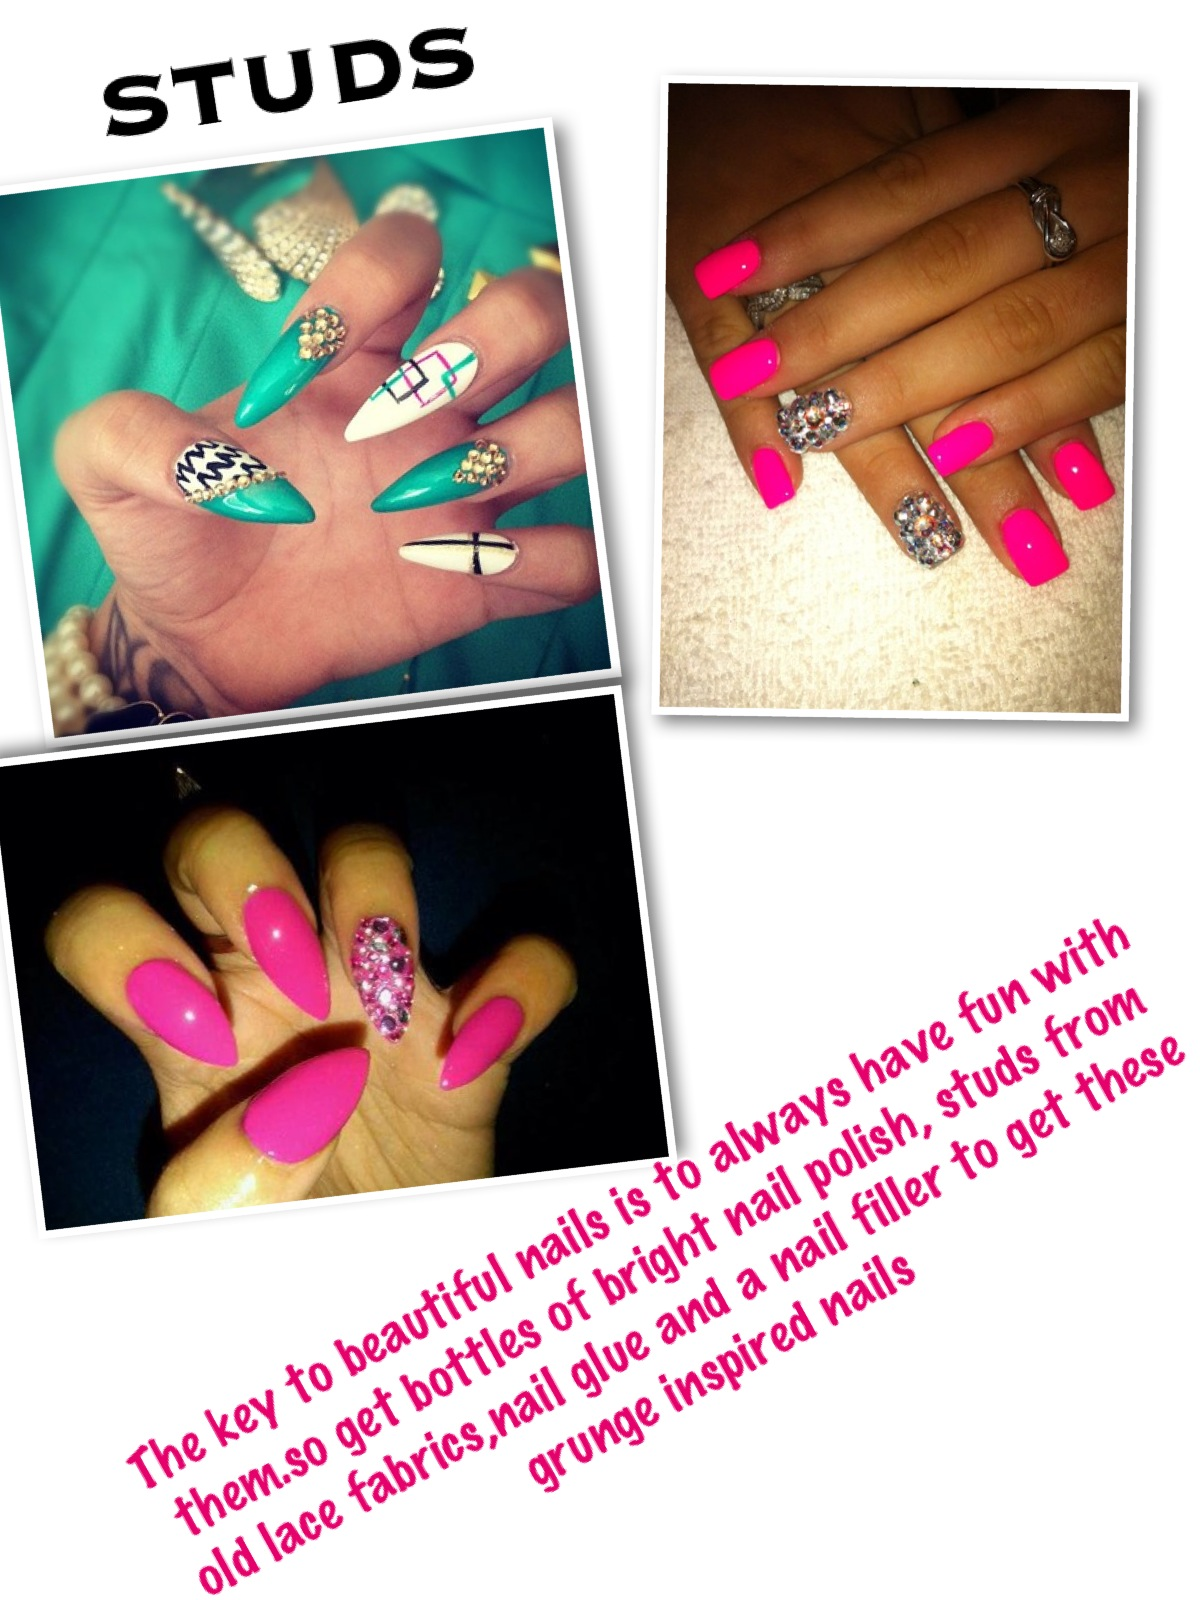 Welcome to Fari Boudoir: For the love of Nails